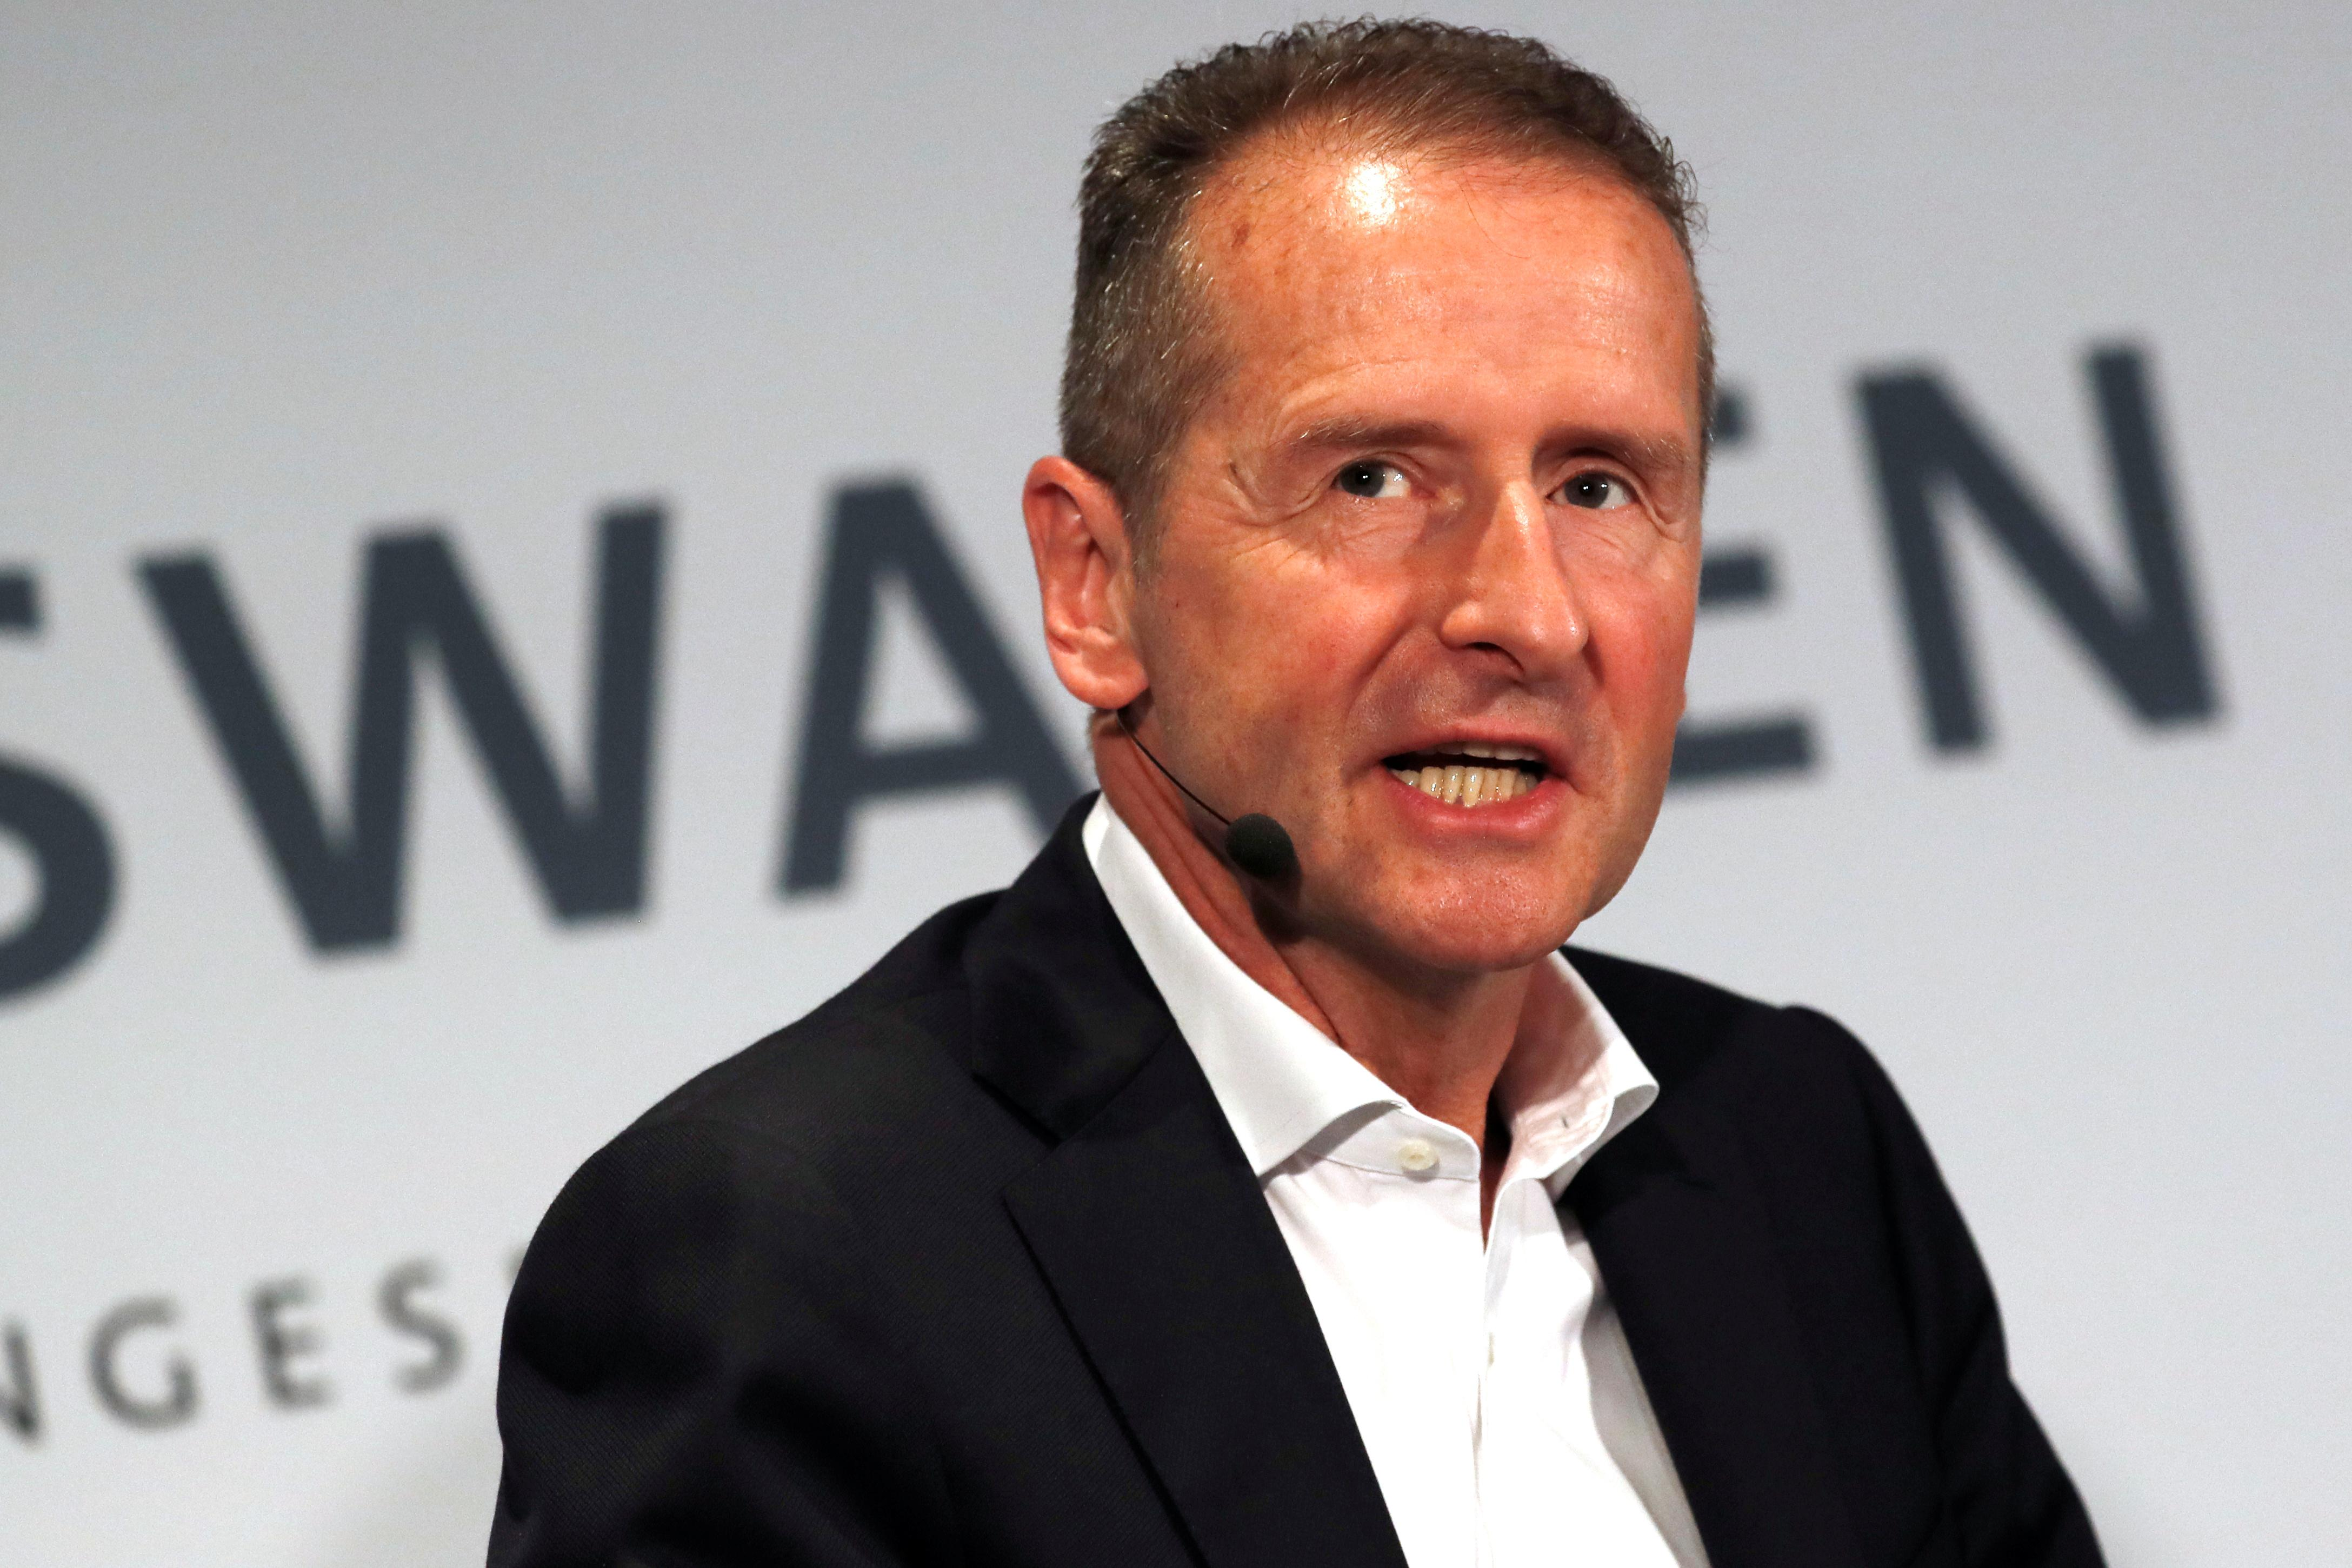 Volkswagen CEO wants a stake in Tesla: Manager Magazin